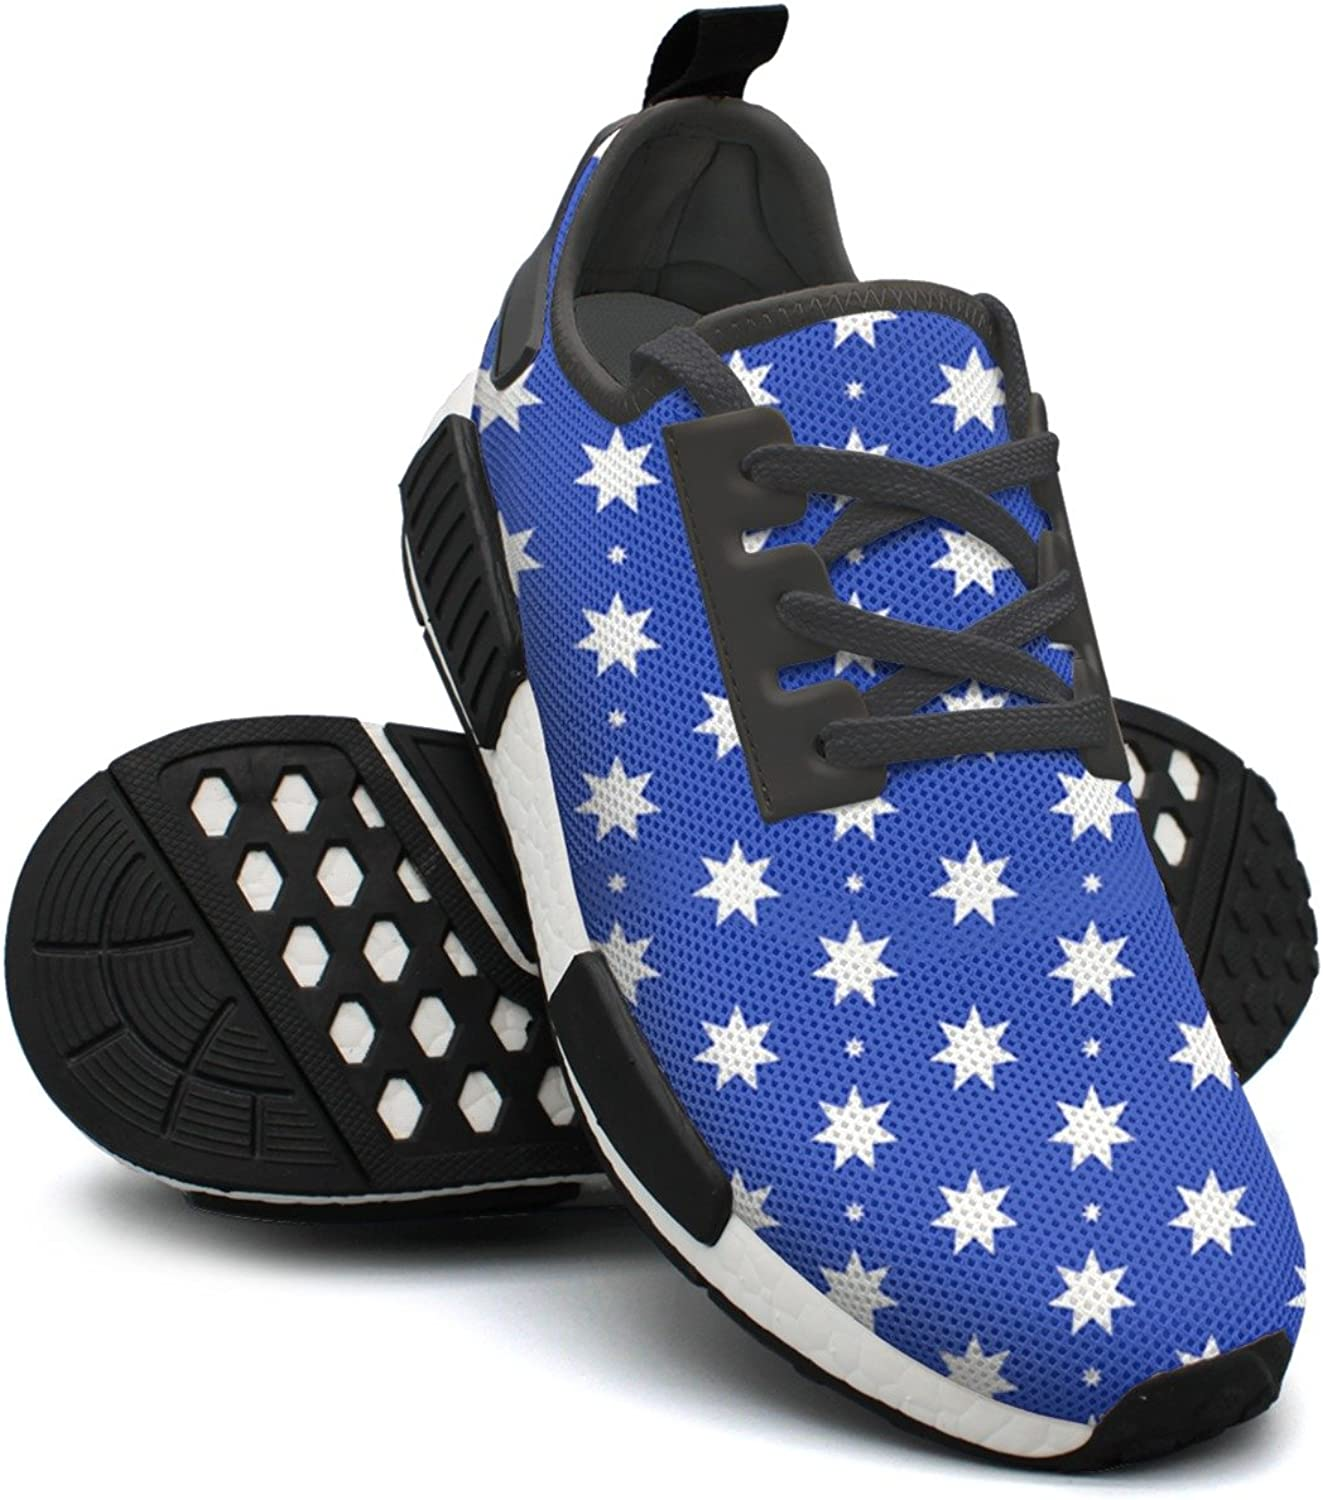 bluee Australia Flags Stars Women's Vintage Lightweight Sneaker Gym Outdoor Athletic shoes